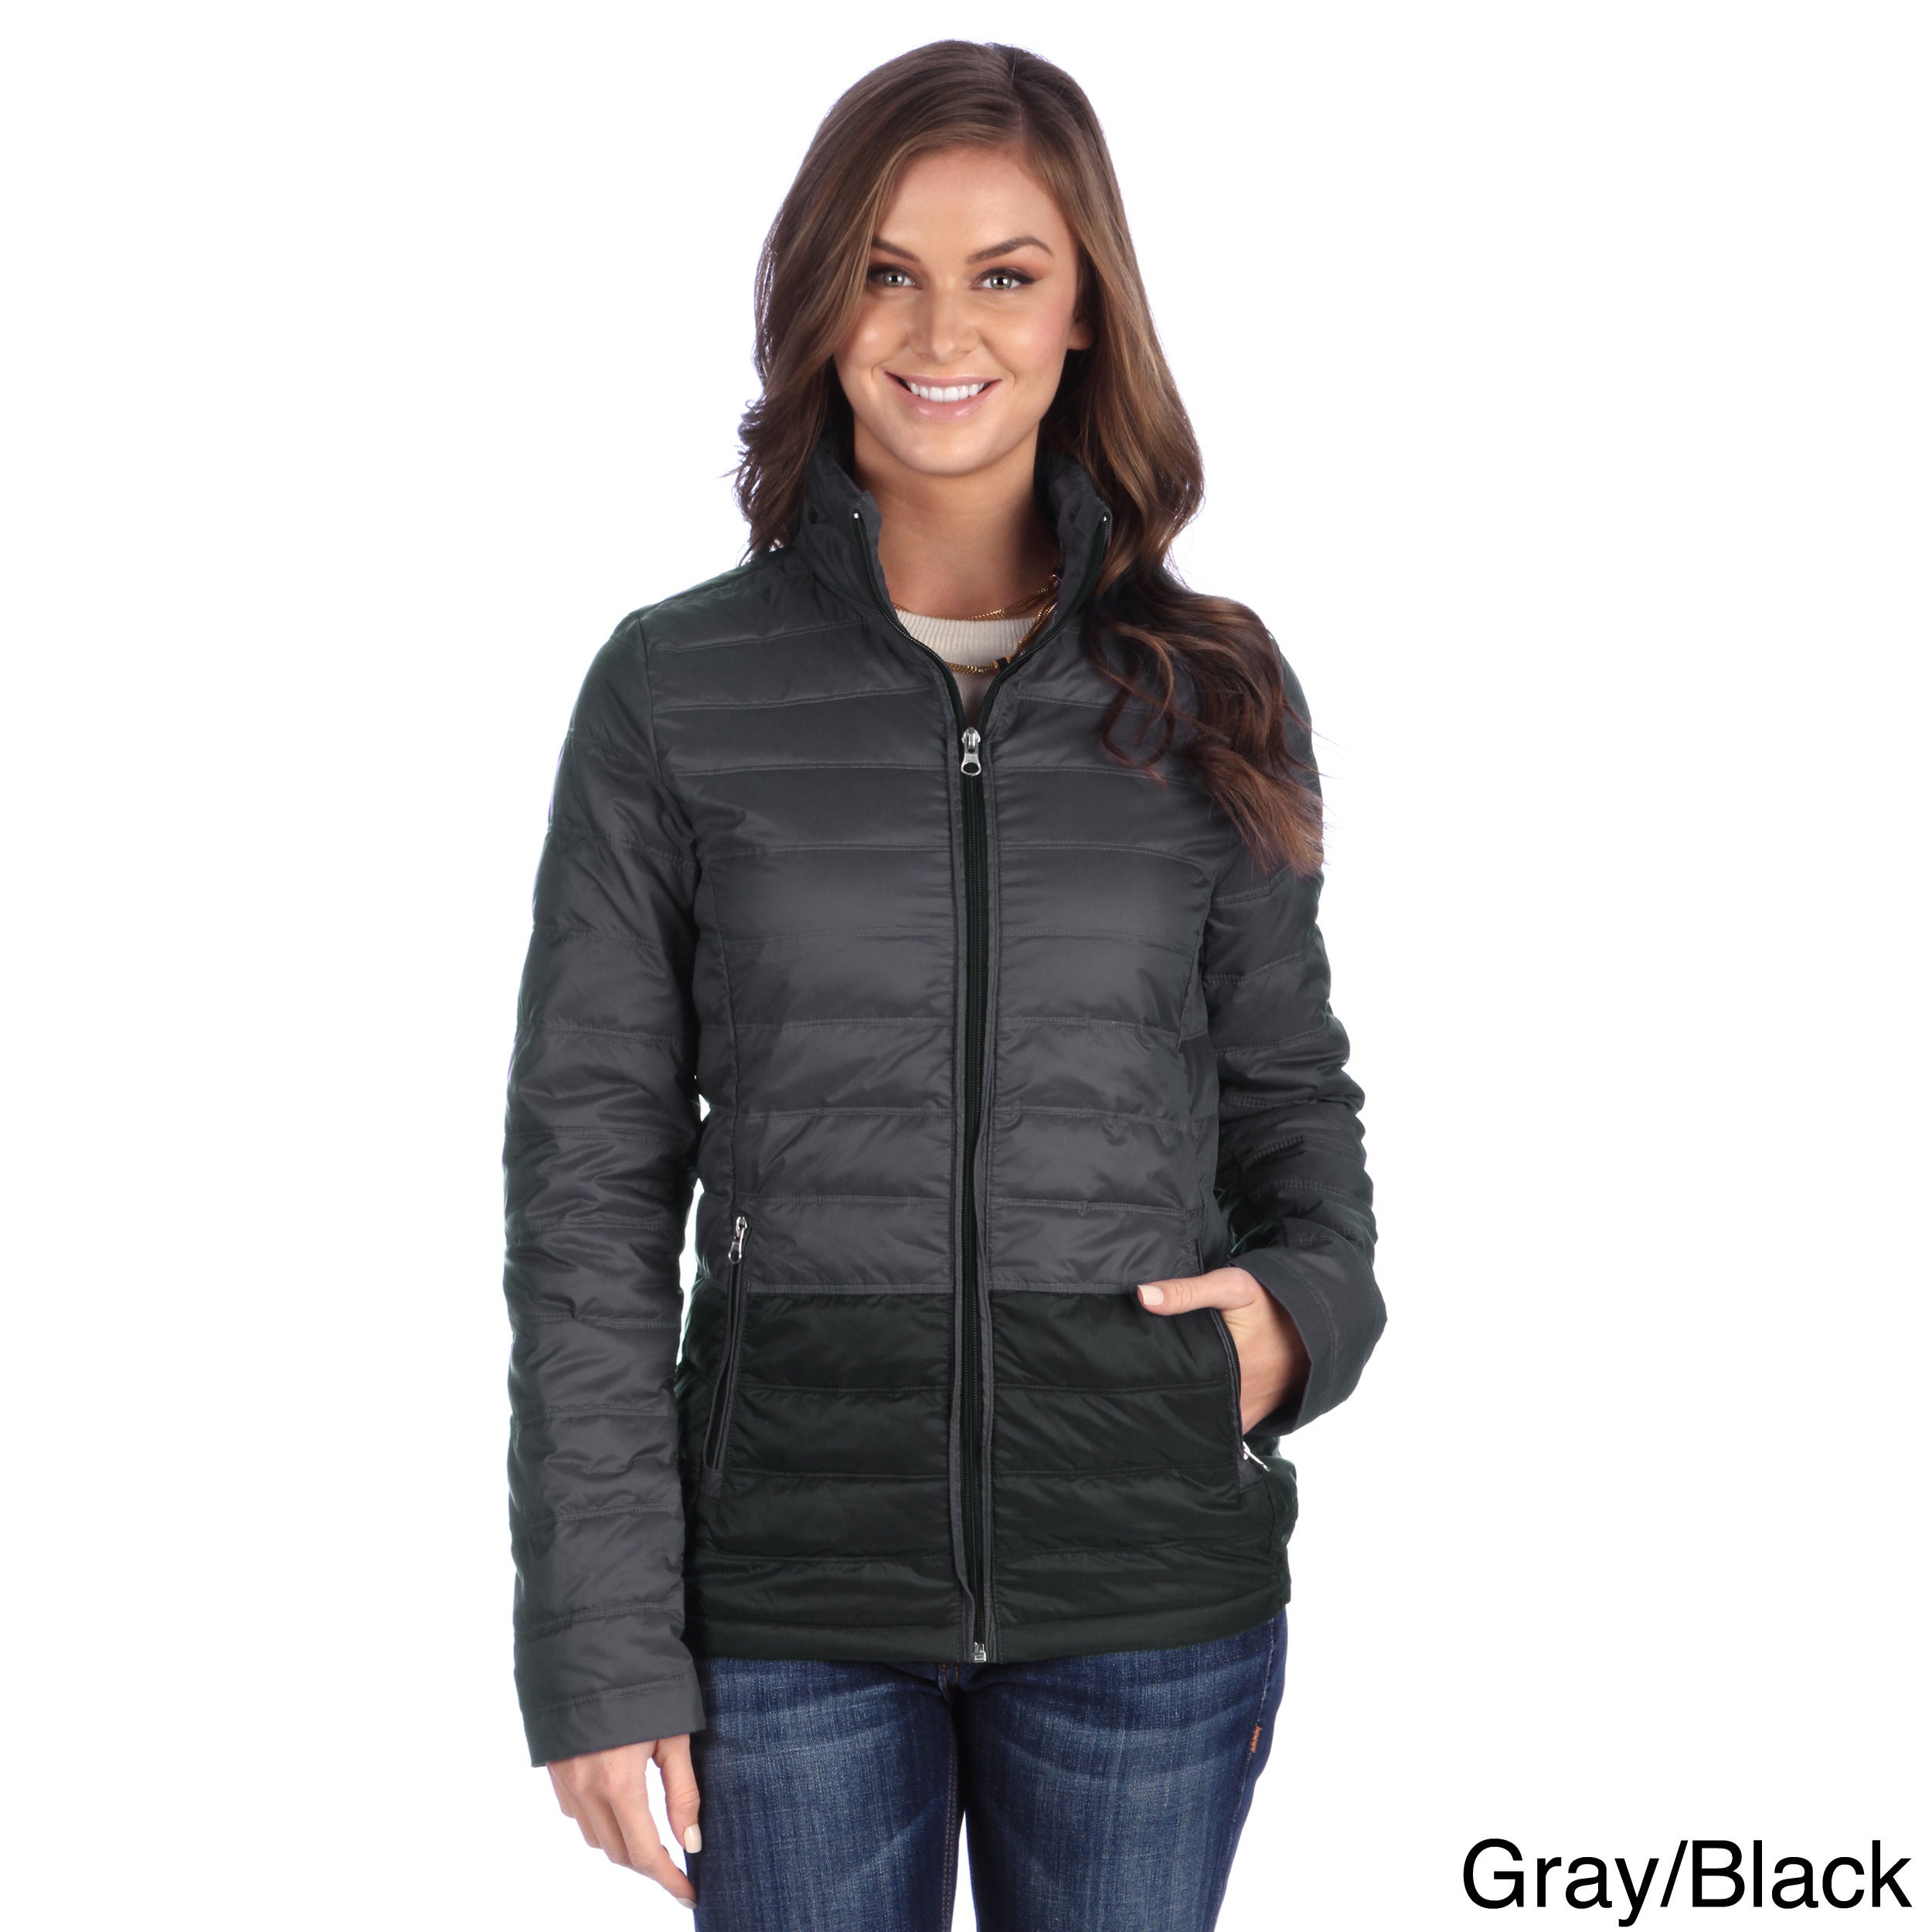 Top Rated Down Jackets